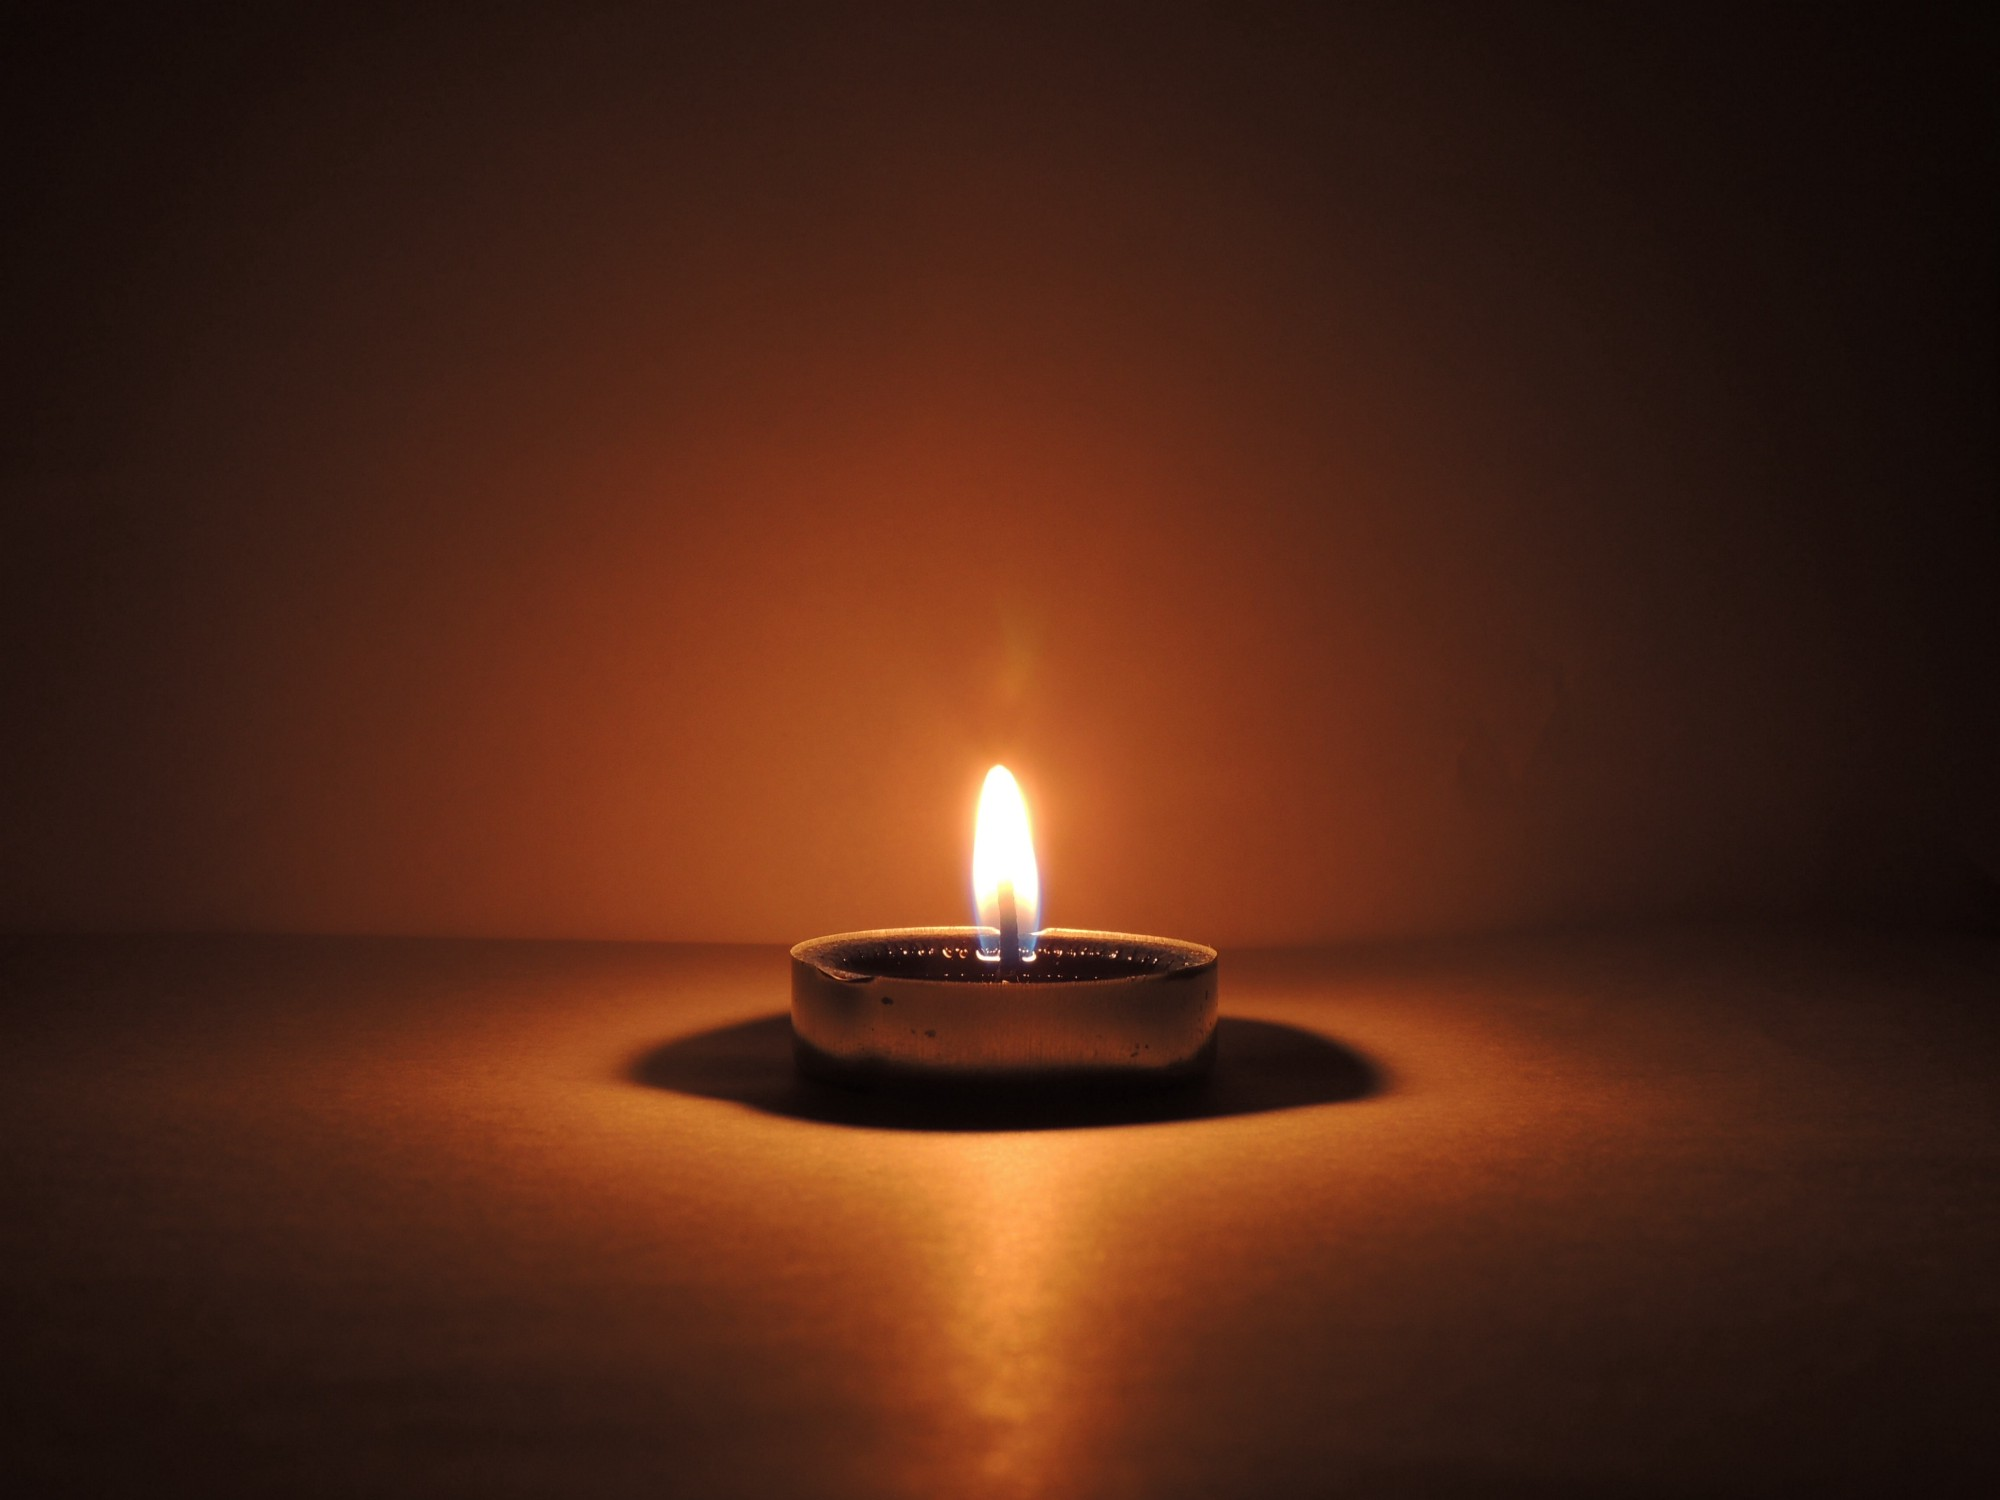 Stock photo of a lit candle